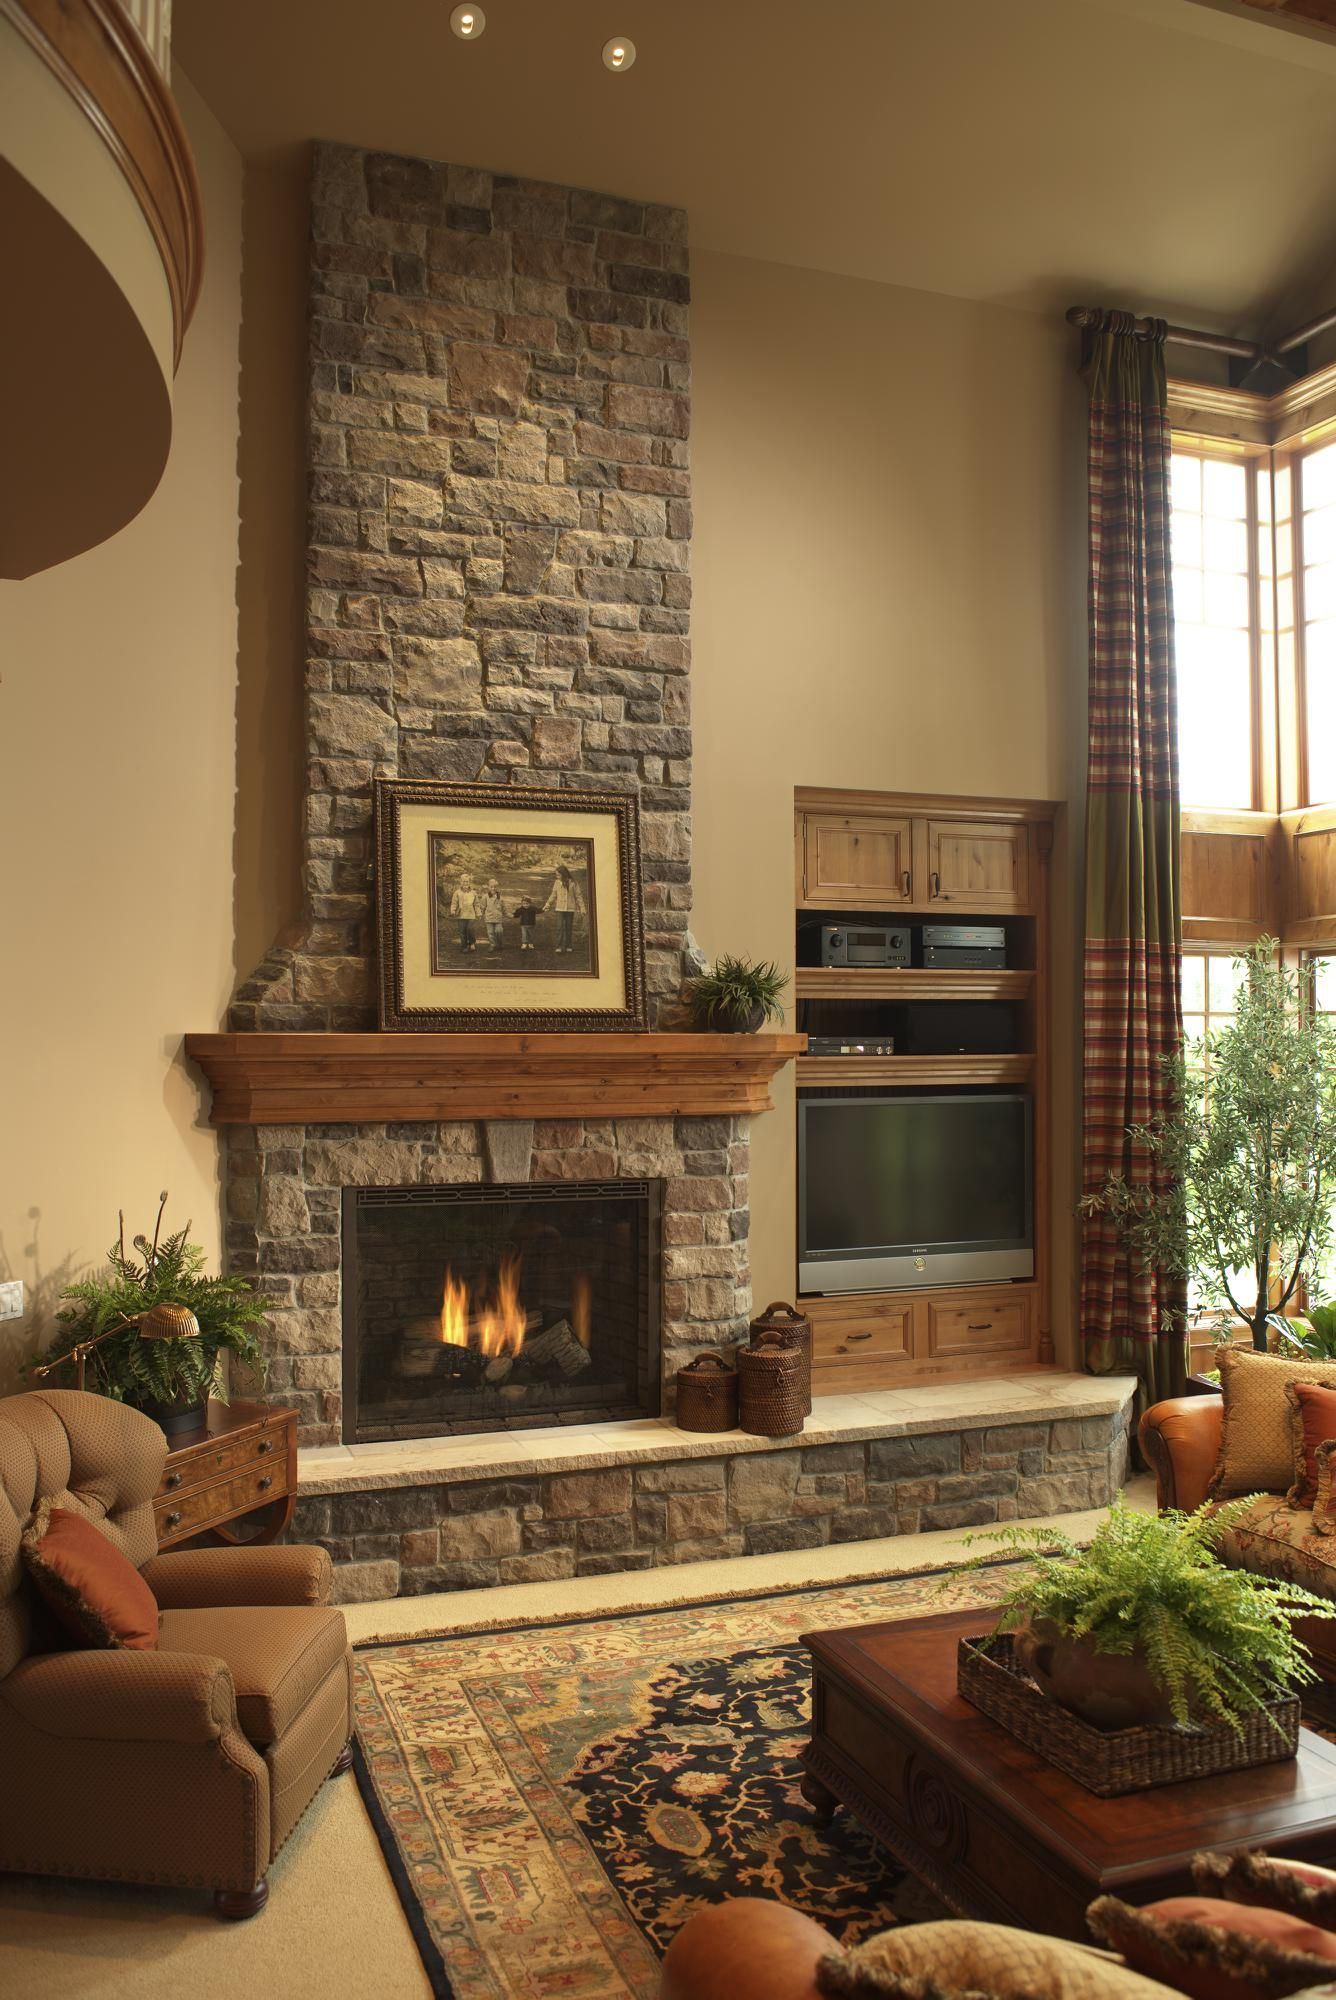 Eldorado stone imagine inspiration gallery - La chimenea decoracion ...